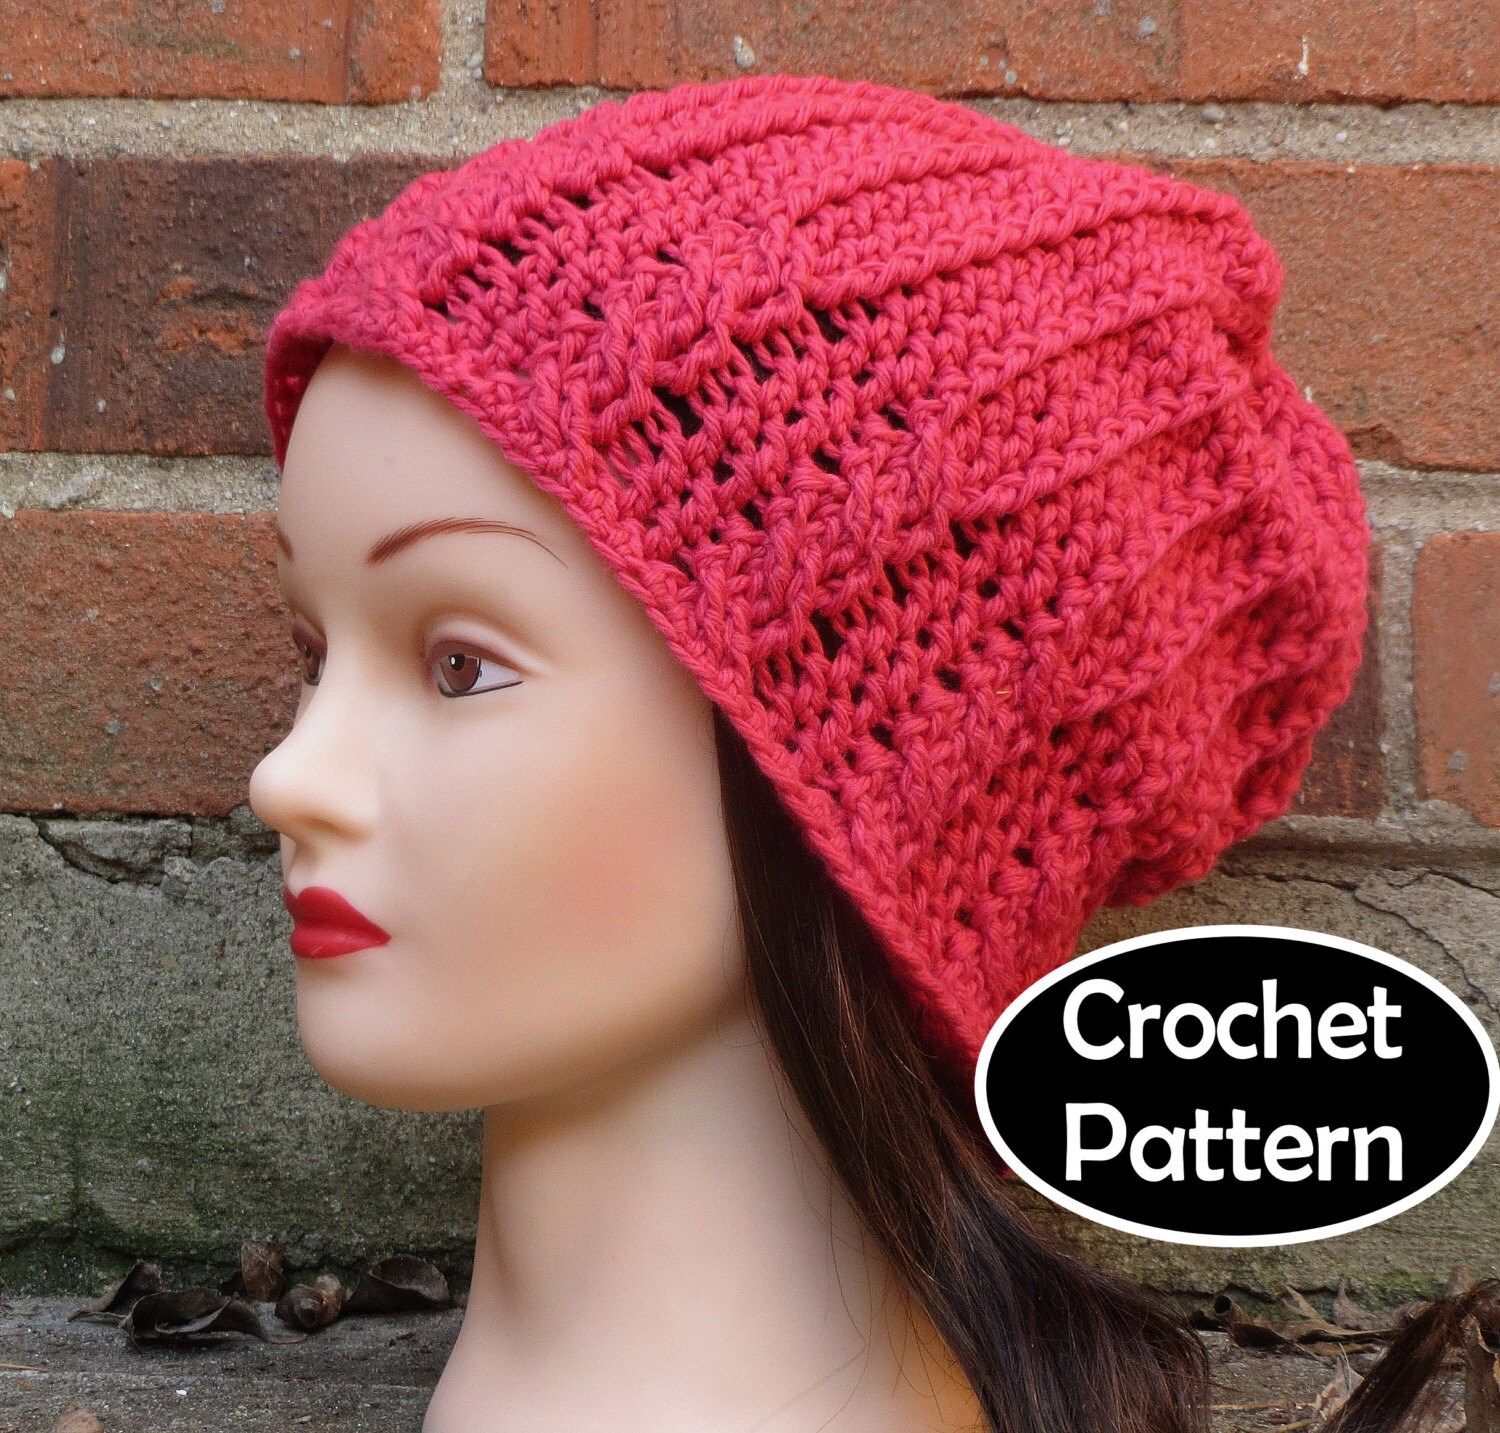 Crochet Hat Pattern Download : CROCHET HAT PATTERN Instant Download Pdf Quinn by AlyseCrochet